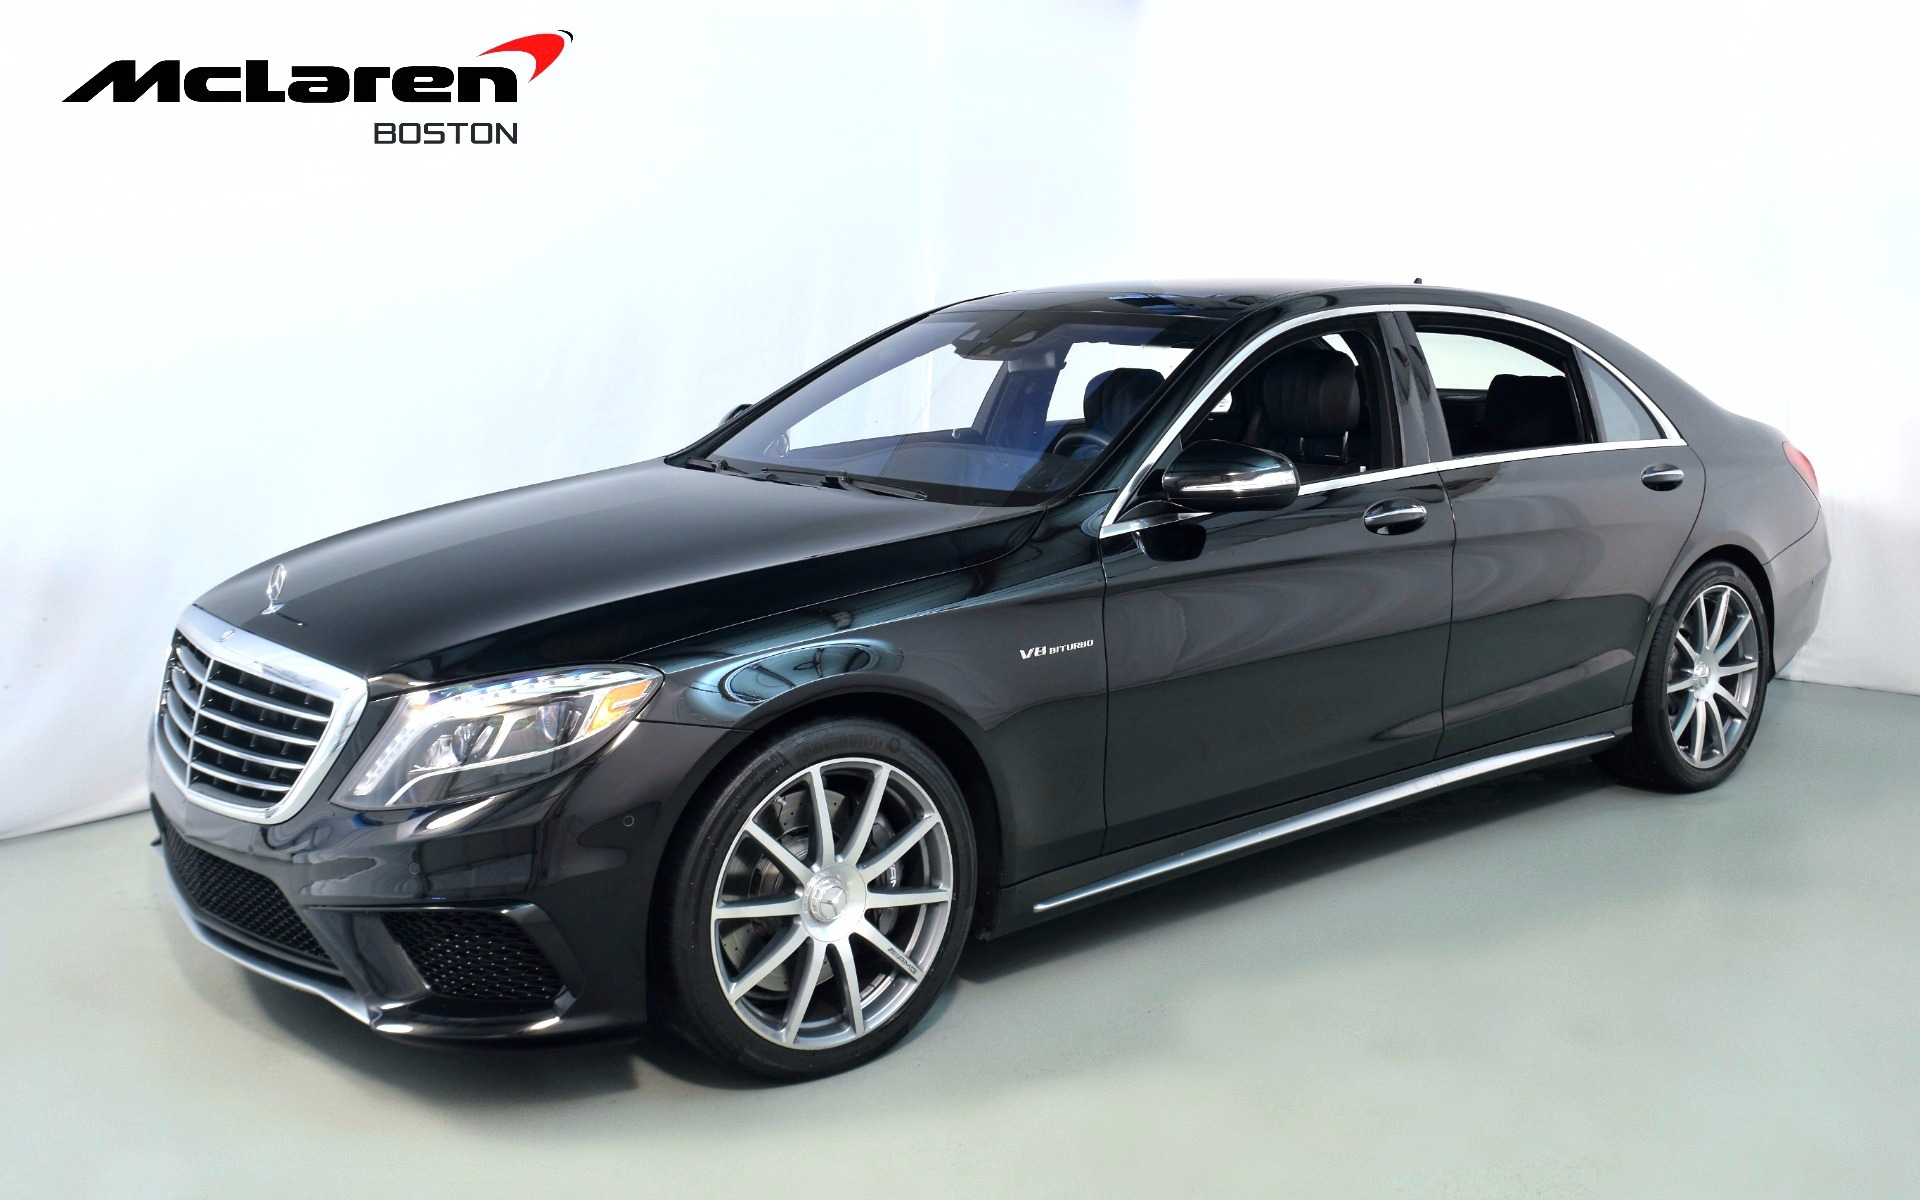 2014 mercedes benz s class s63 amg for sale in norwell ma 034988 mclaren boston. Black Bedroom Furniture Sets. Home Design Ideas